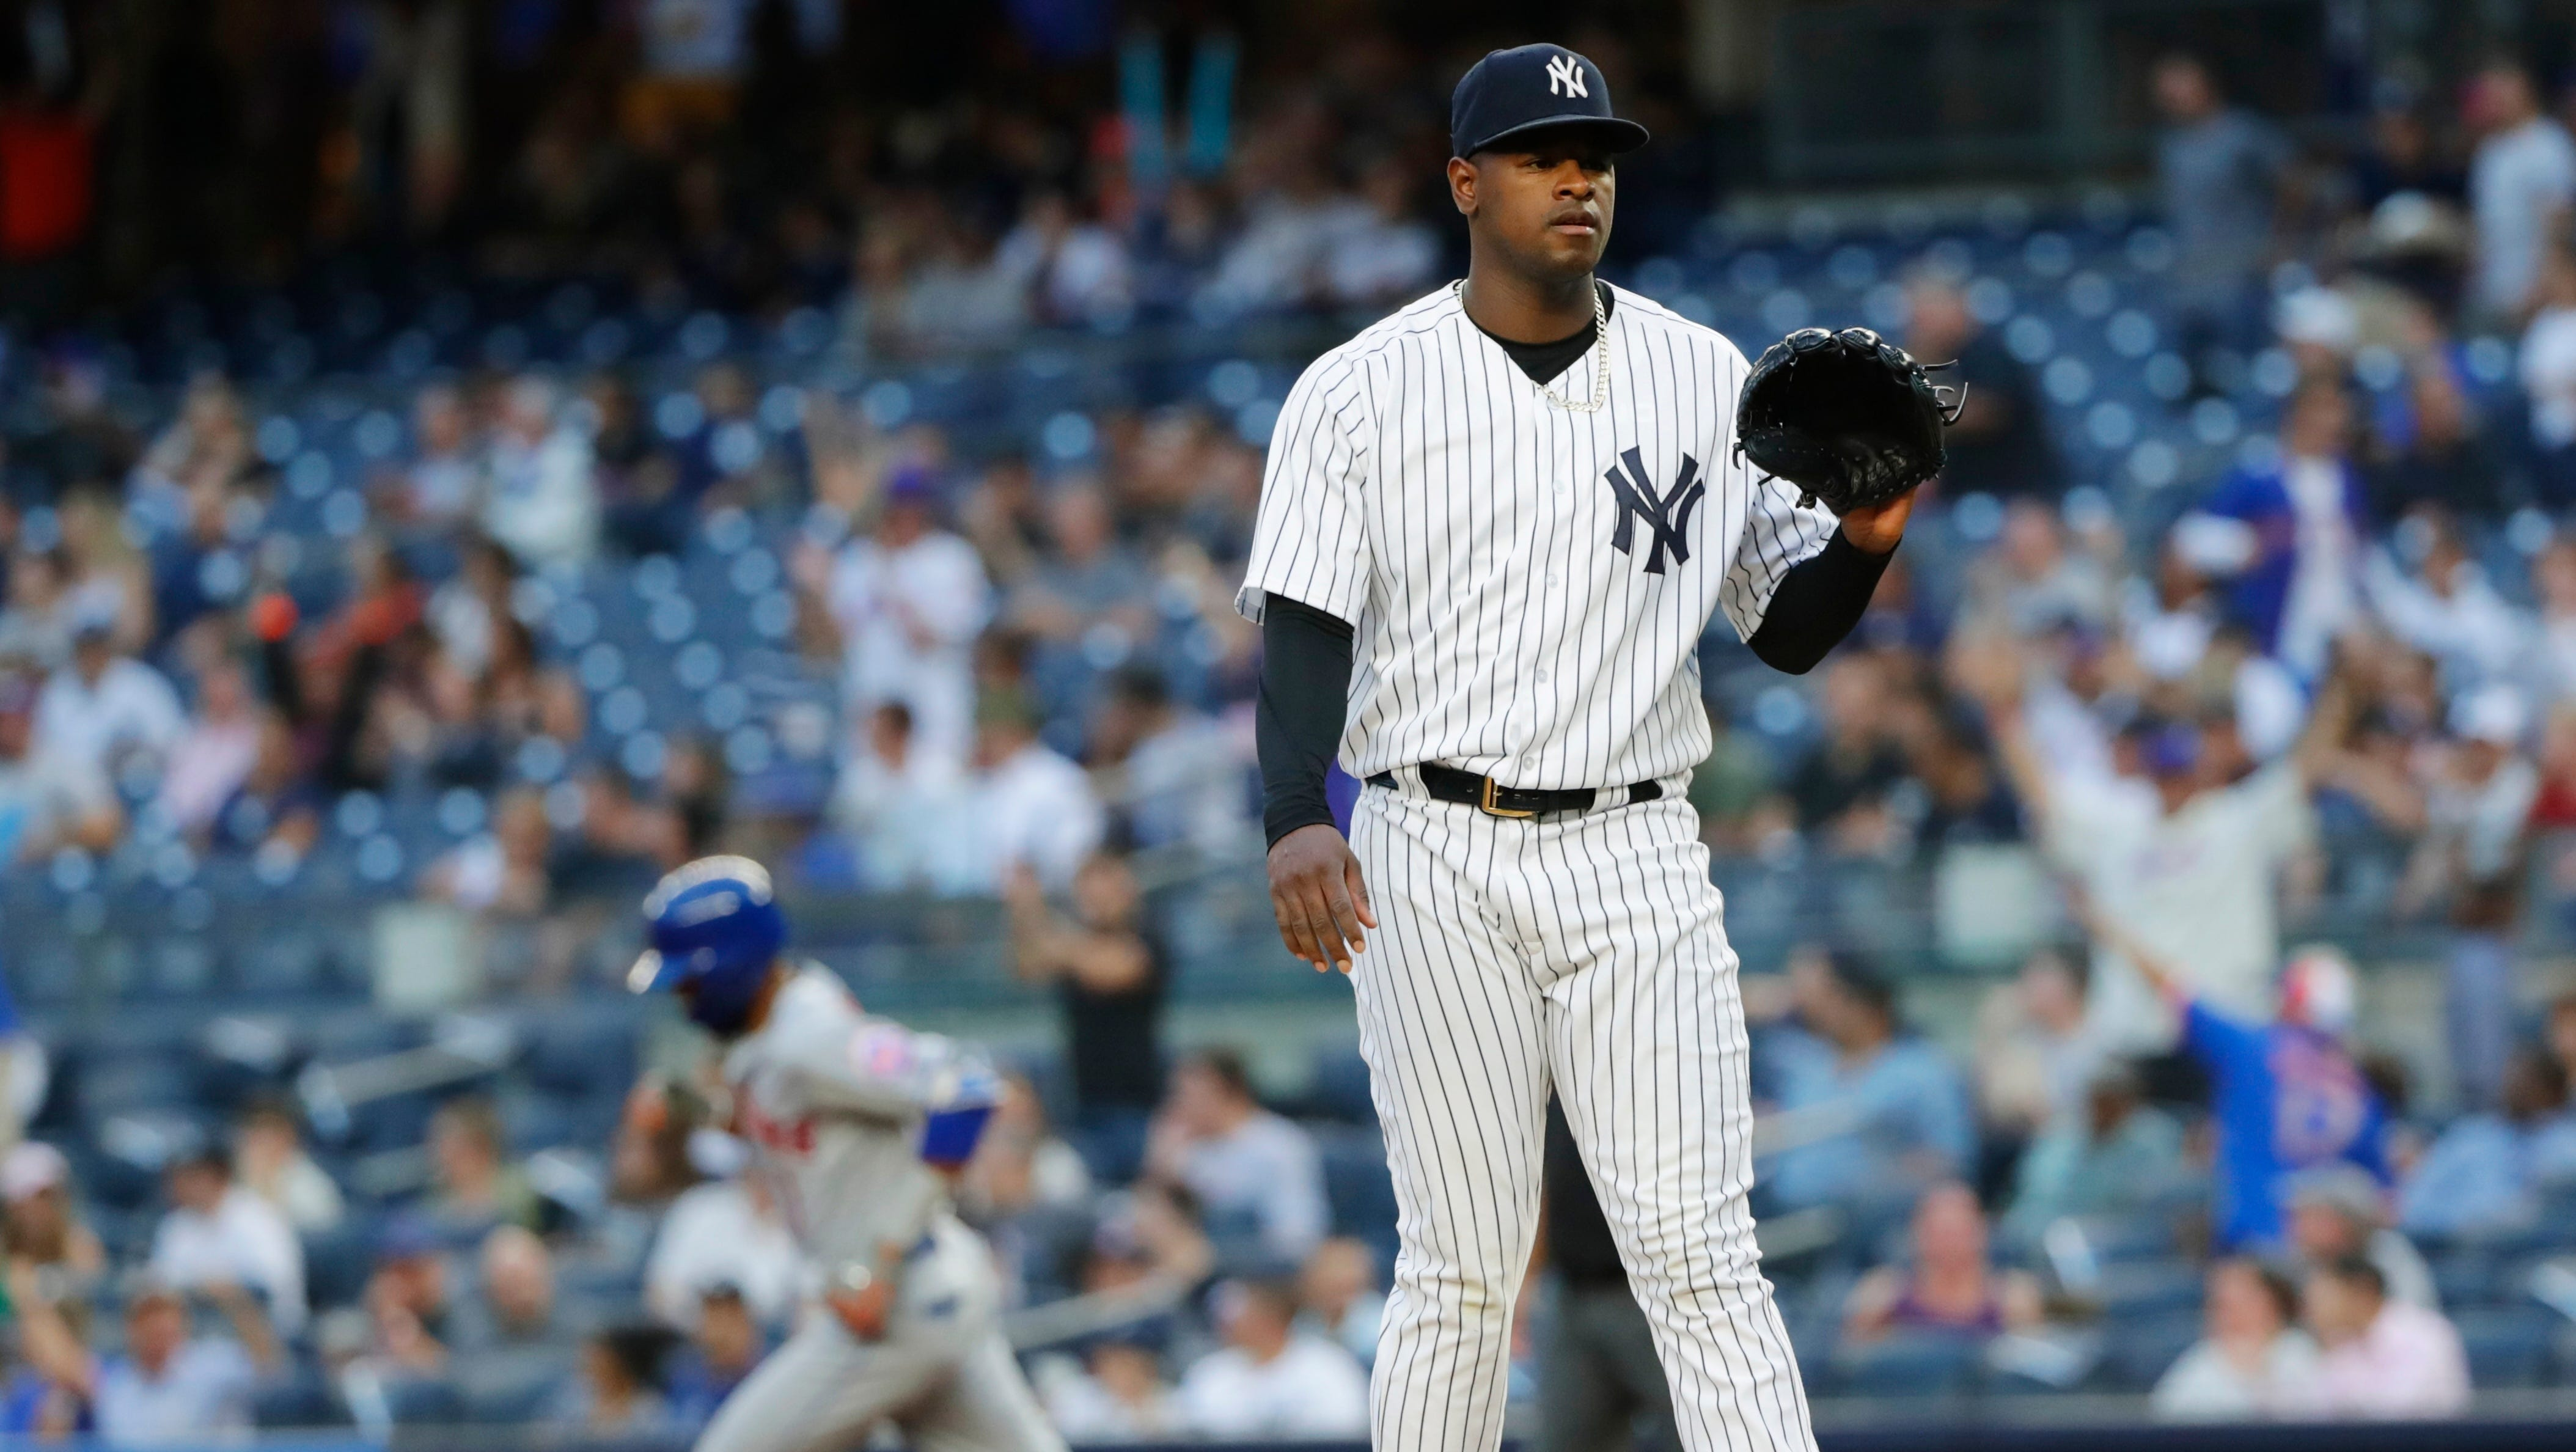 With Luis Severino struggling, here are five options for the Yankees